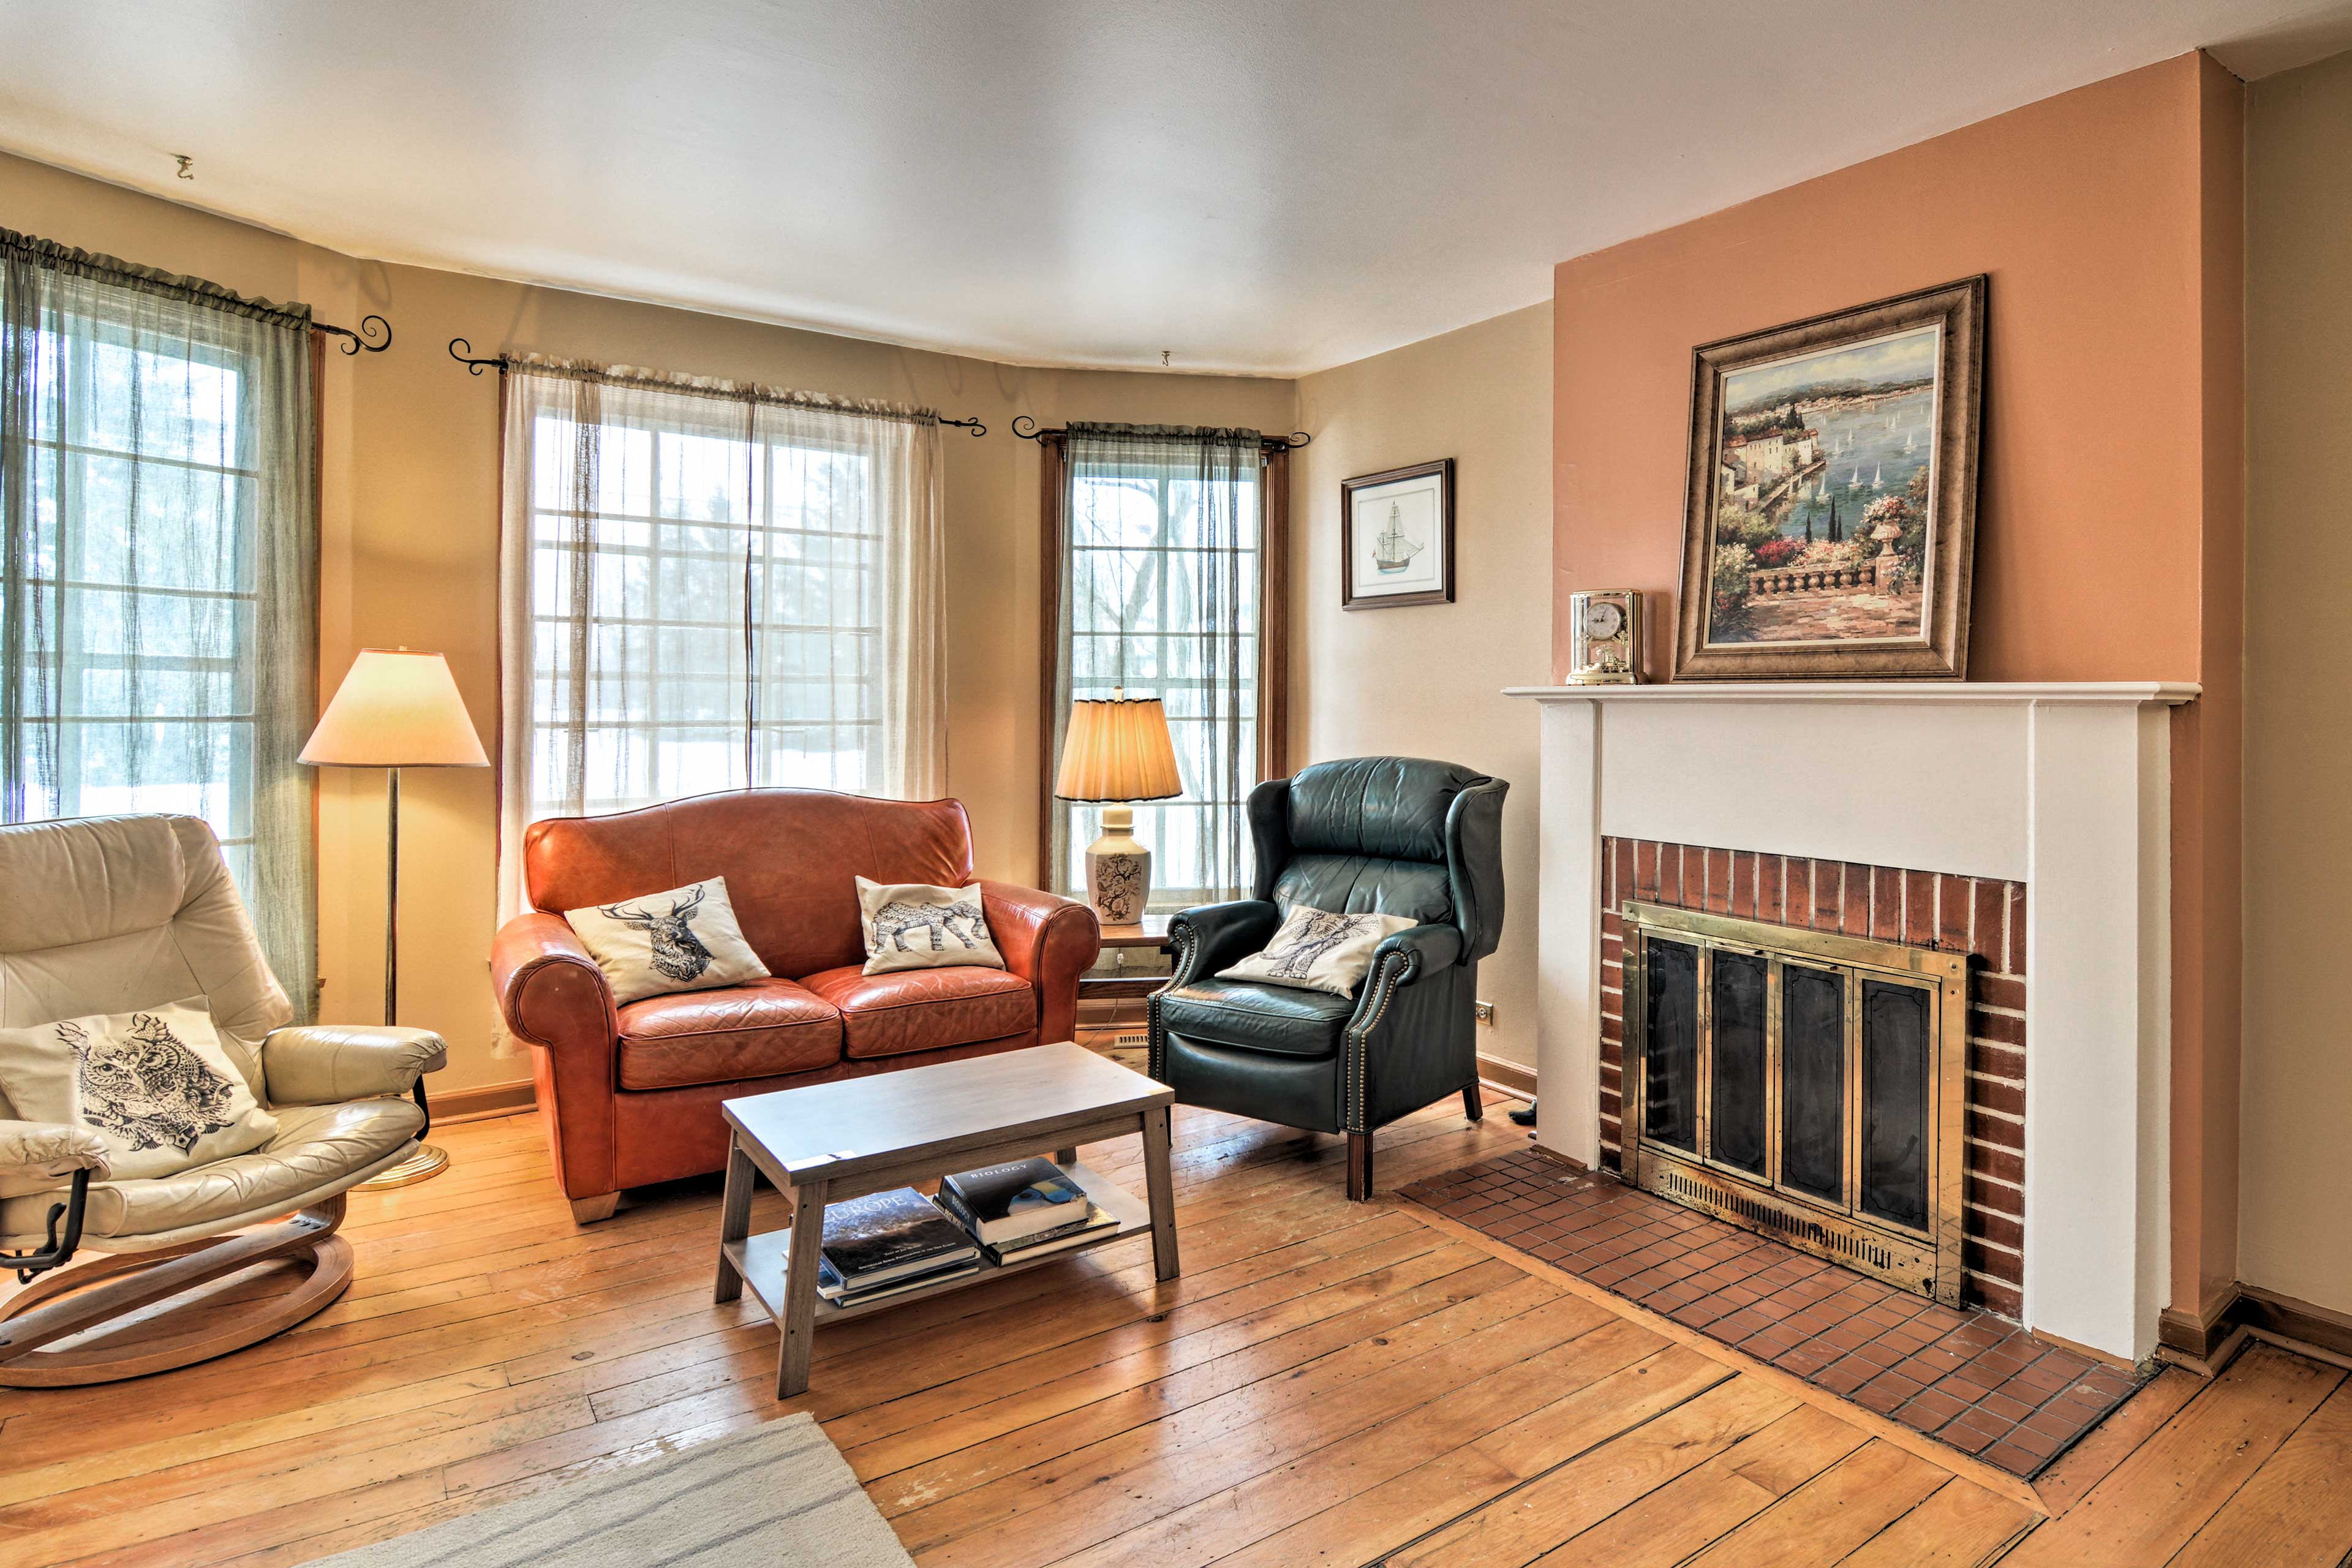 Make yourself at home inside this vacation rental house!